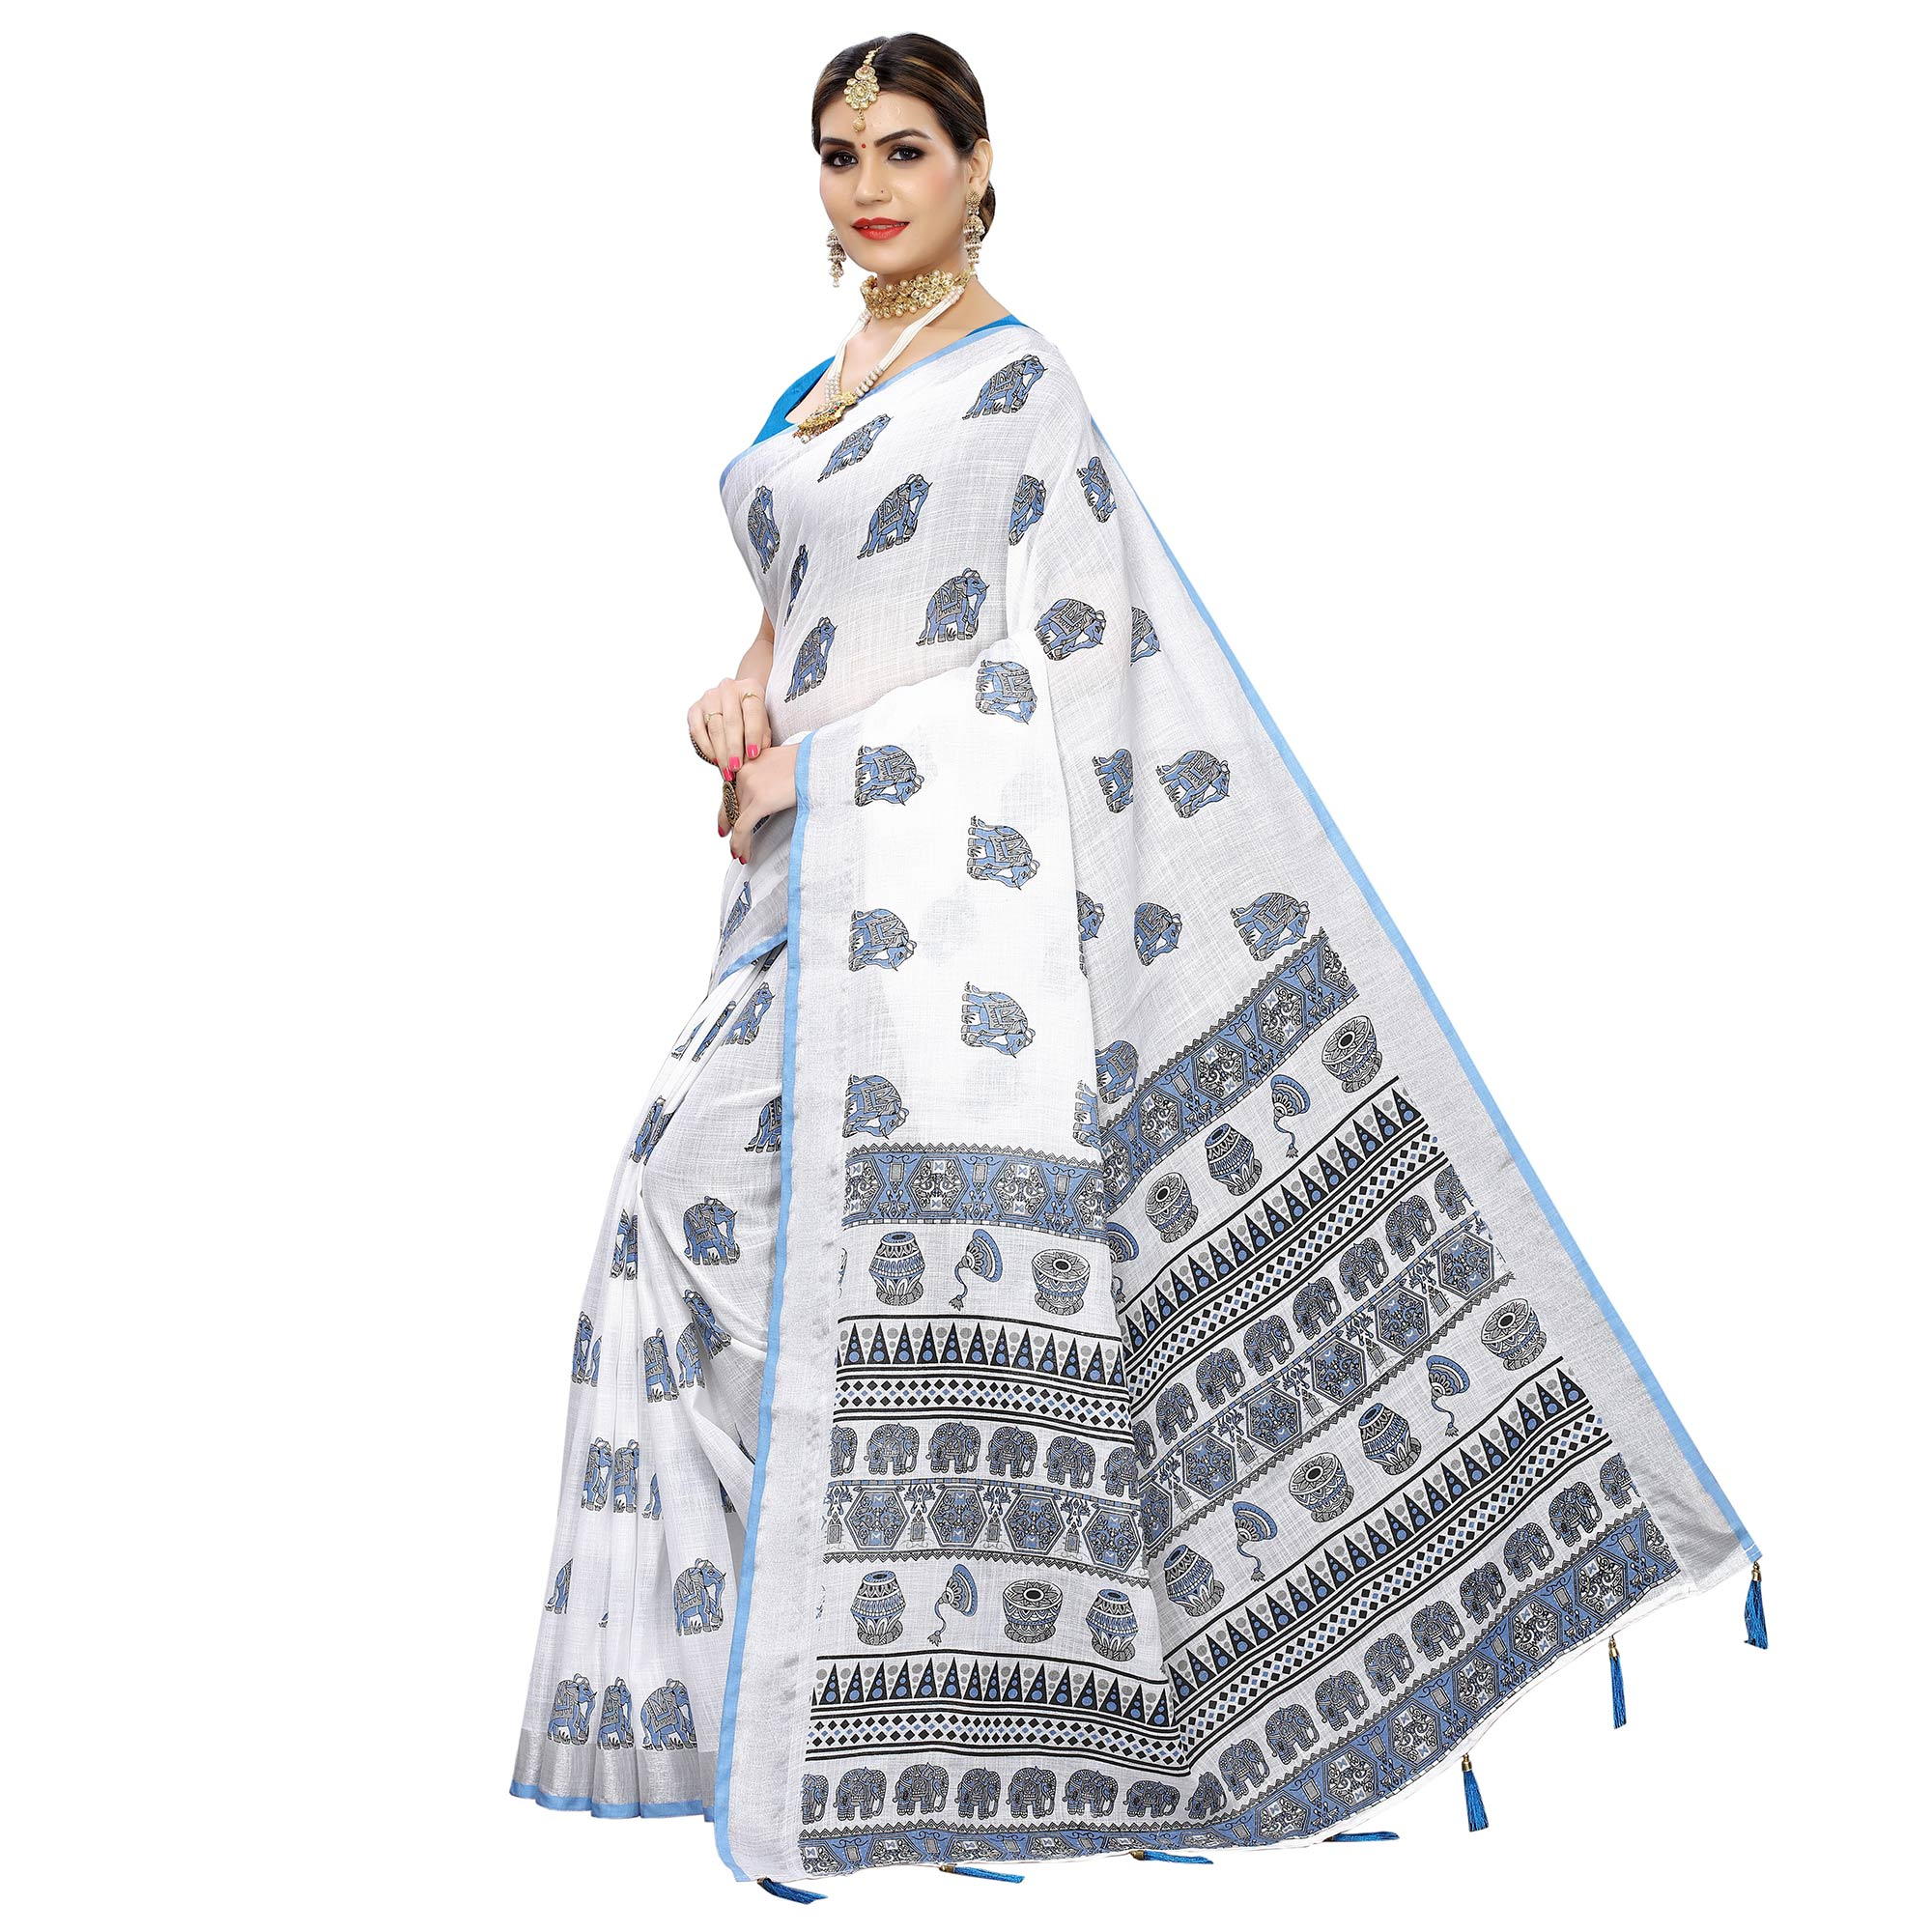 Blooming White-Blue Colored Casual Digital Elephant Printed Linen Saree